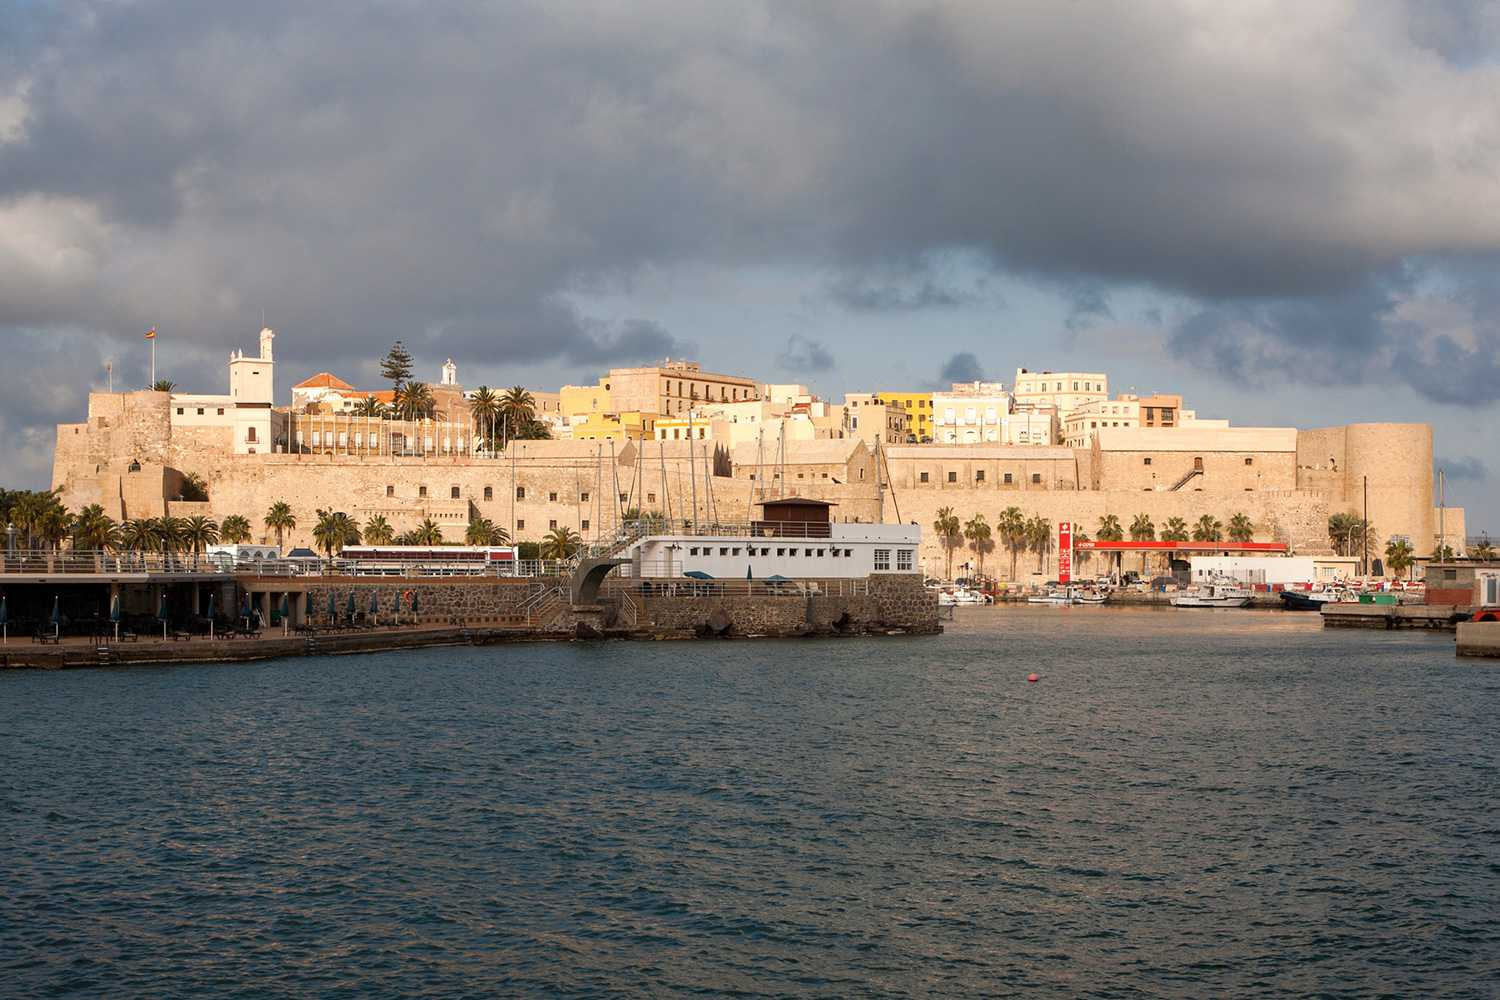 View of the walled city of Melilla from the harbor